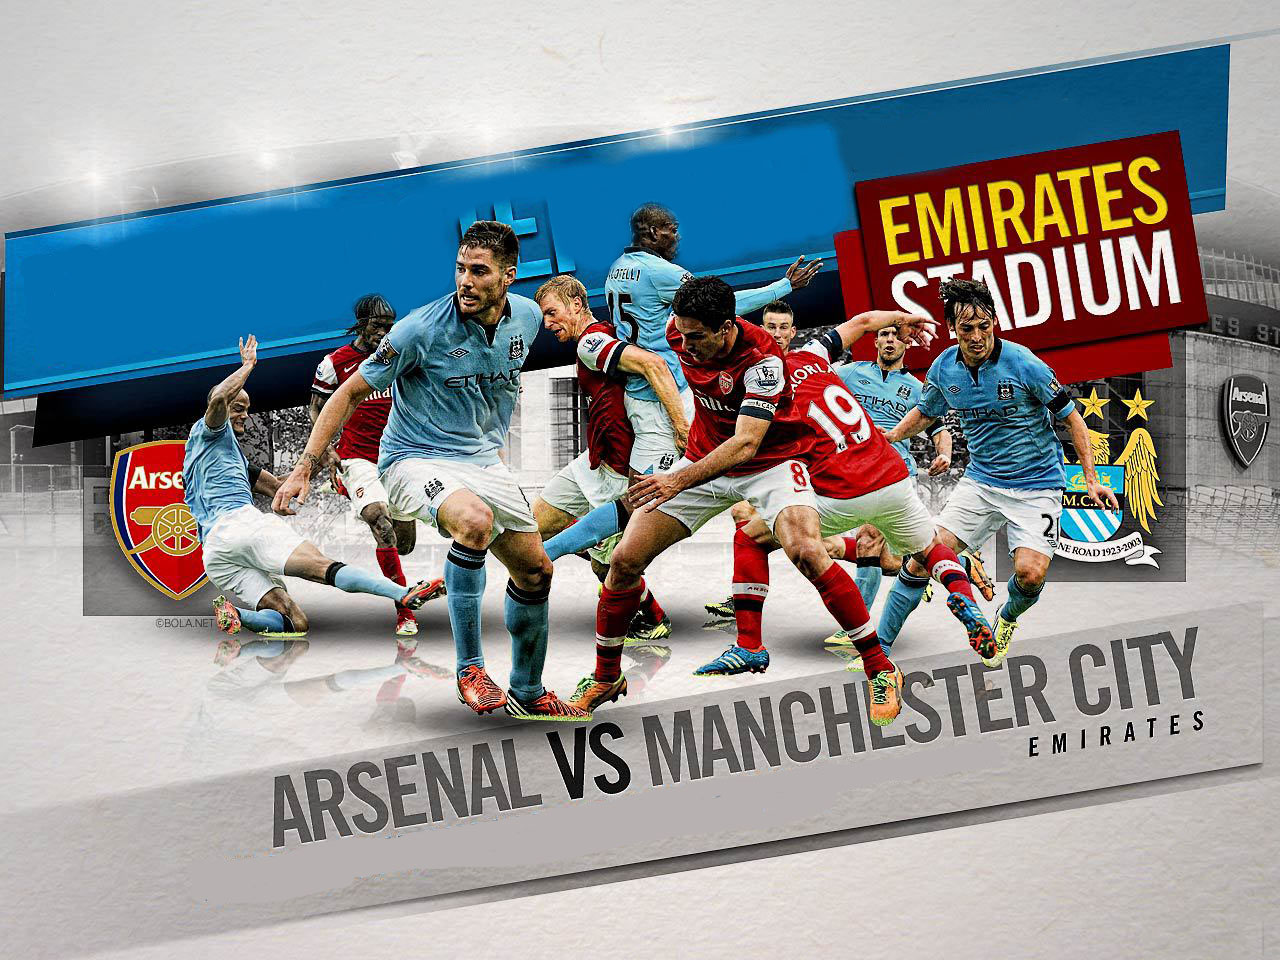 Arsenal vs Manchester City wallpaper